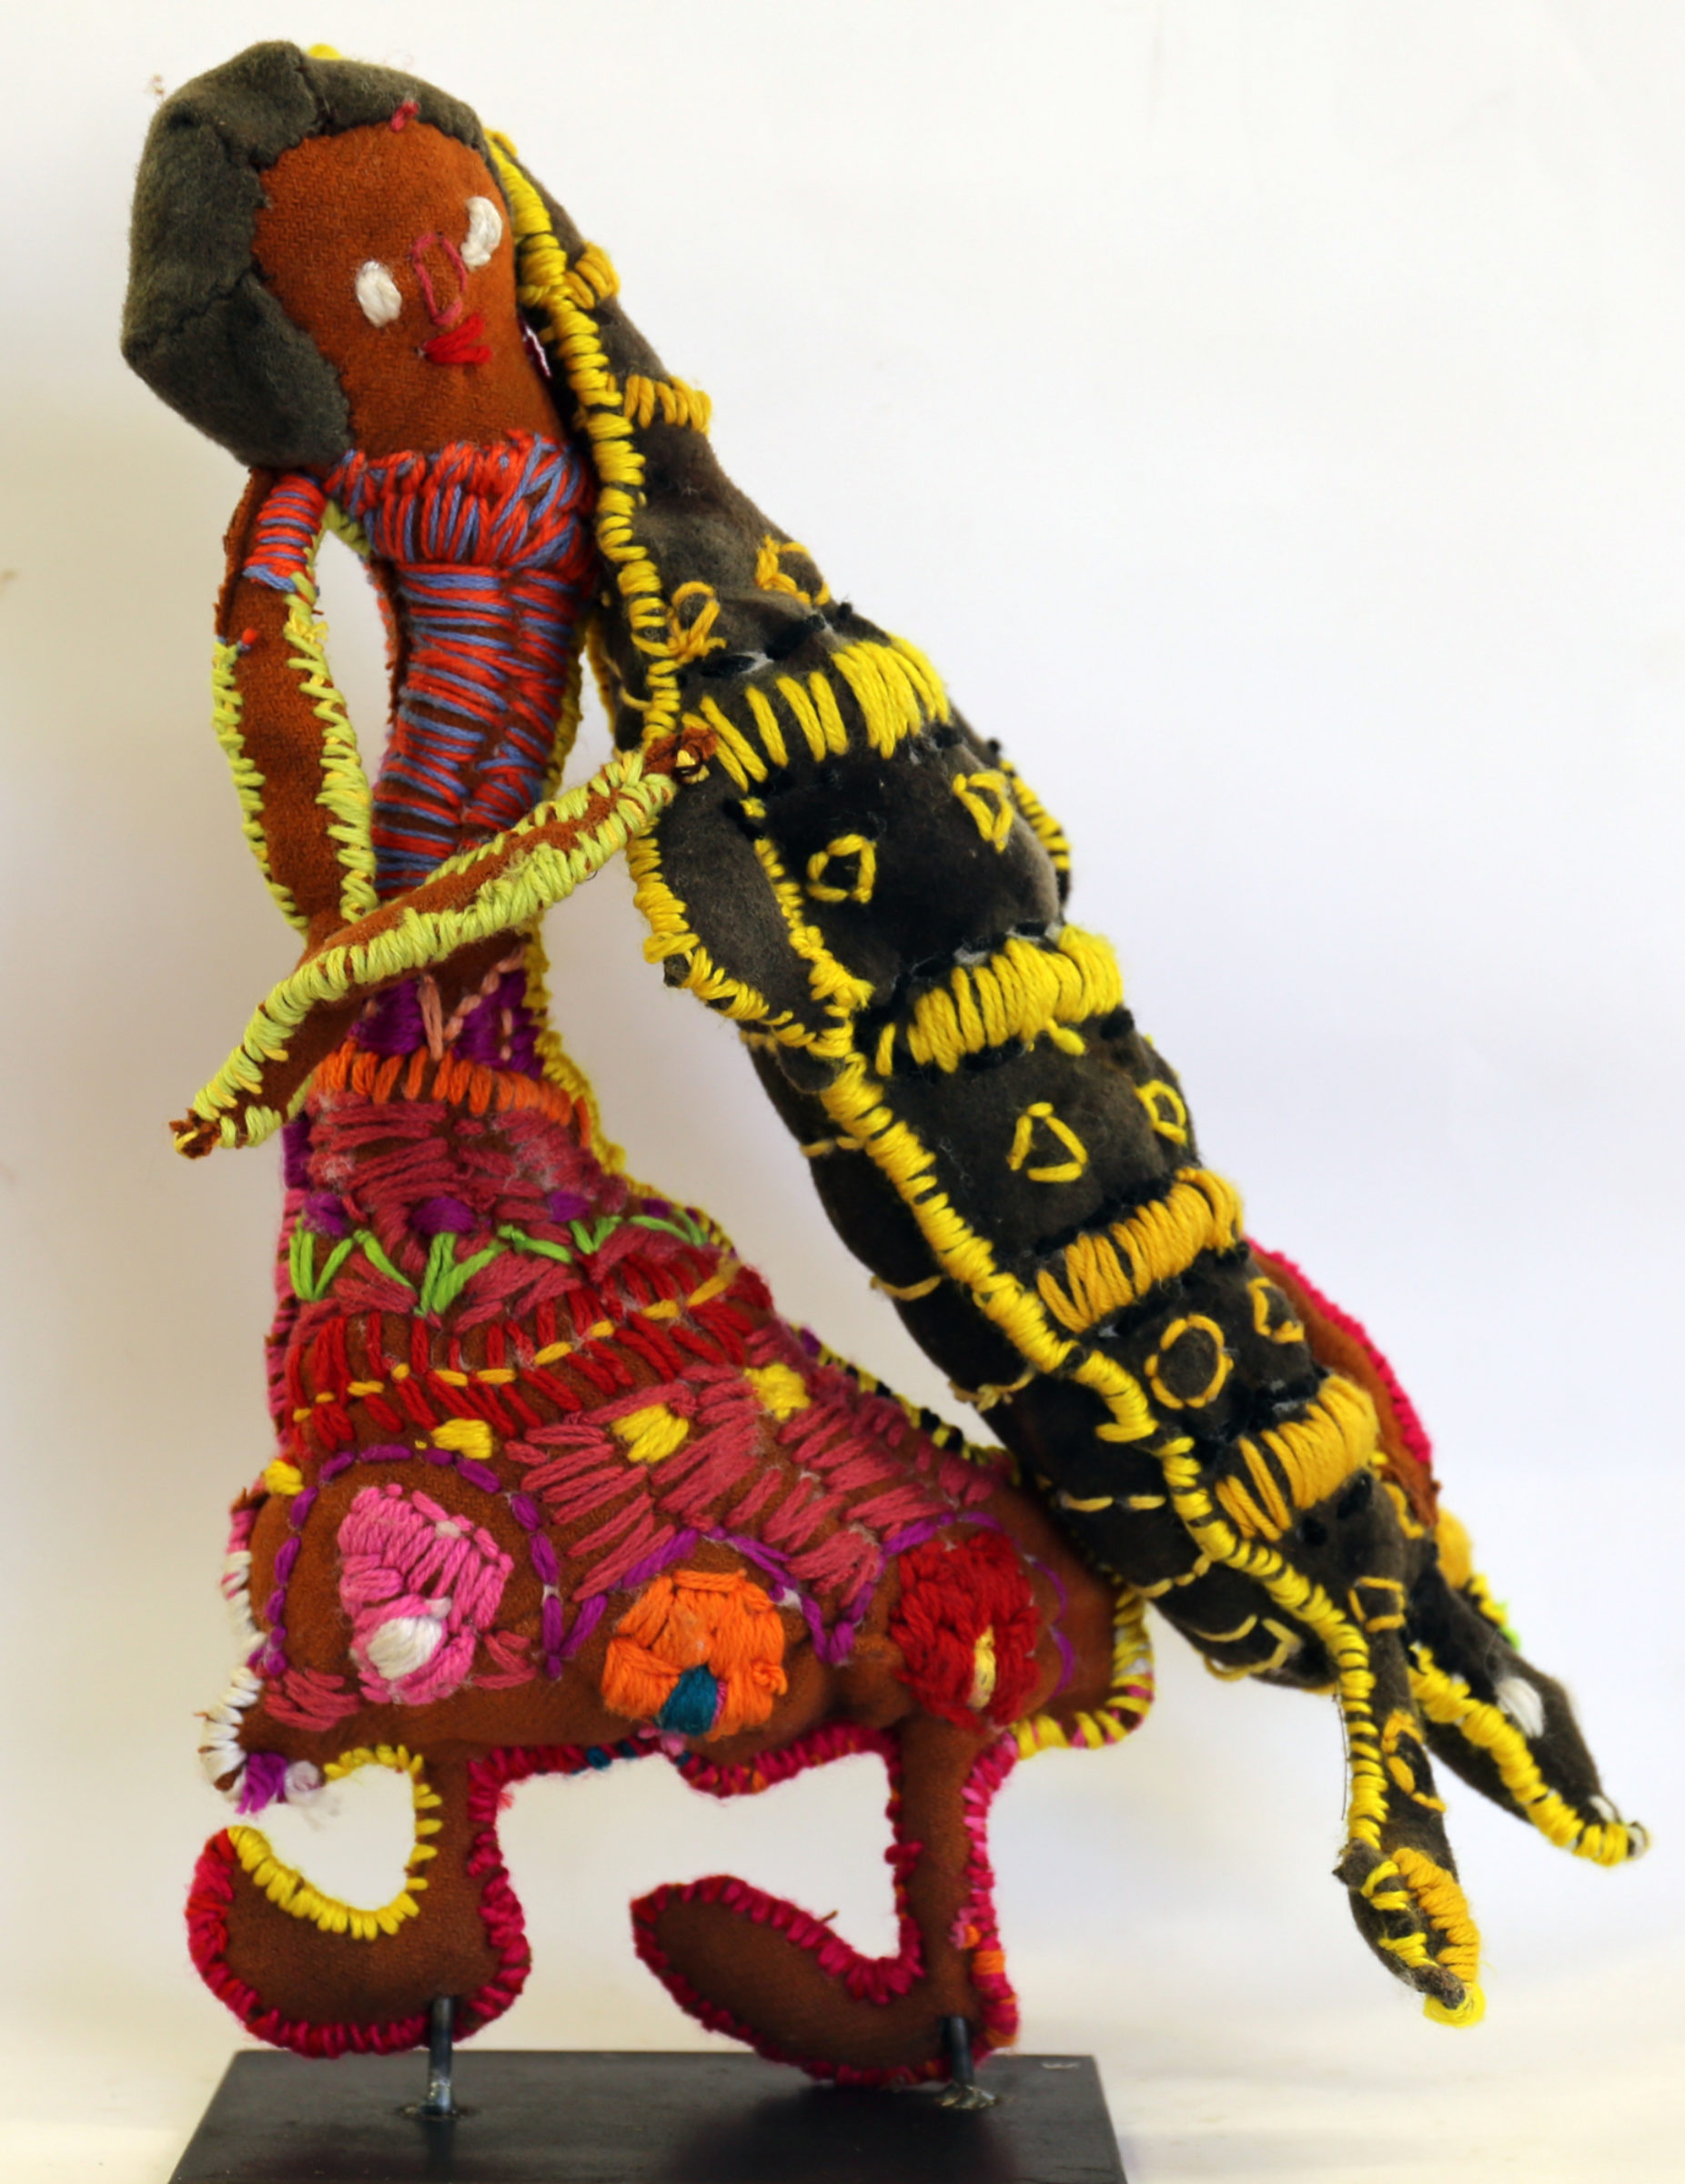 Trudy-Inkamala_Woman-with-Goanna_Cat77-18_woollen-blanket-knitting-wool-cotton-metal-stand_46x32x9cm